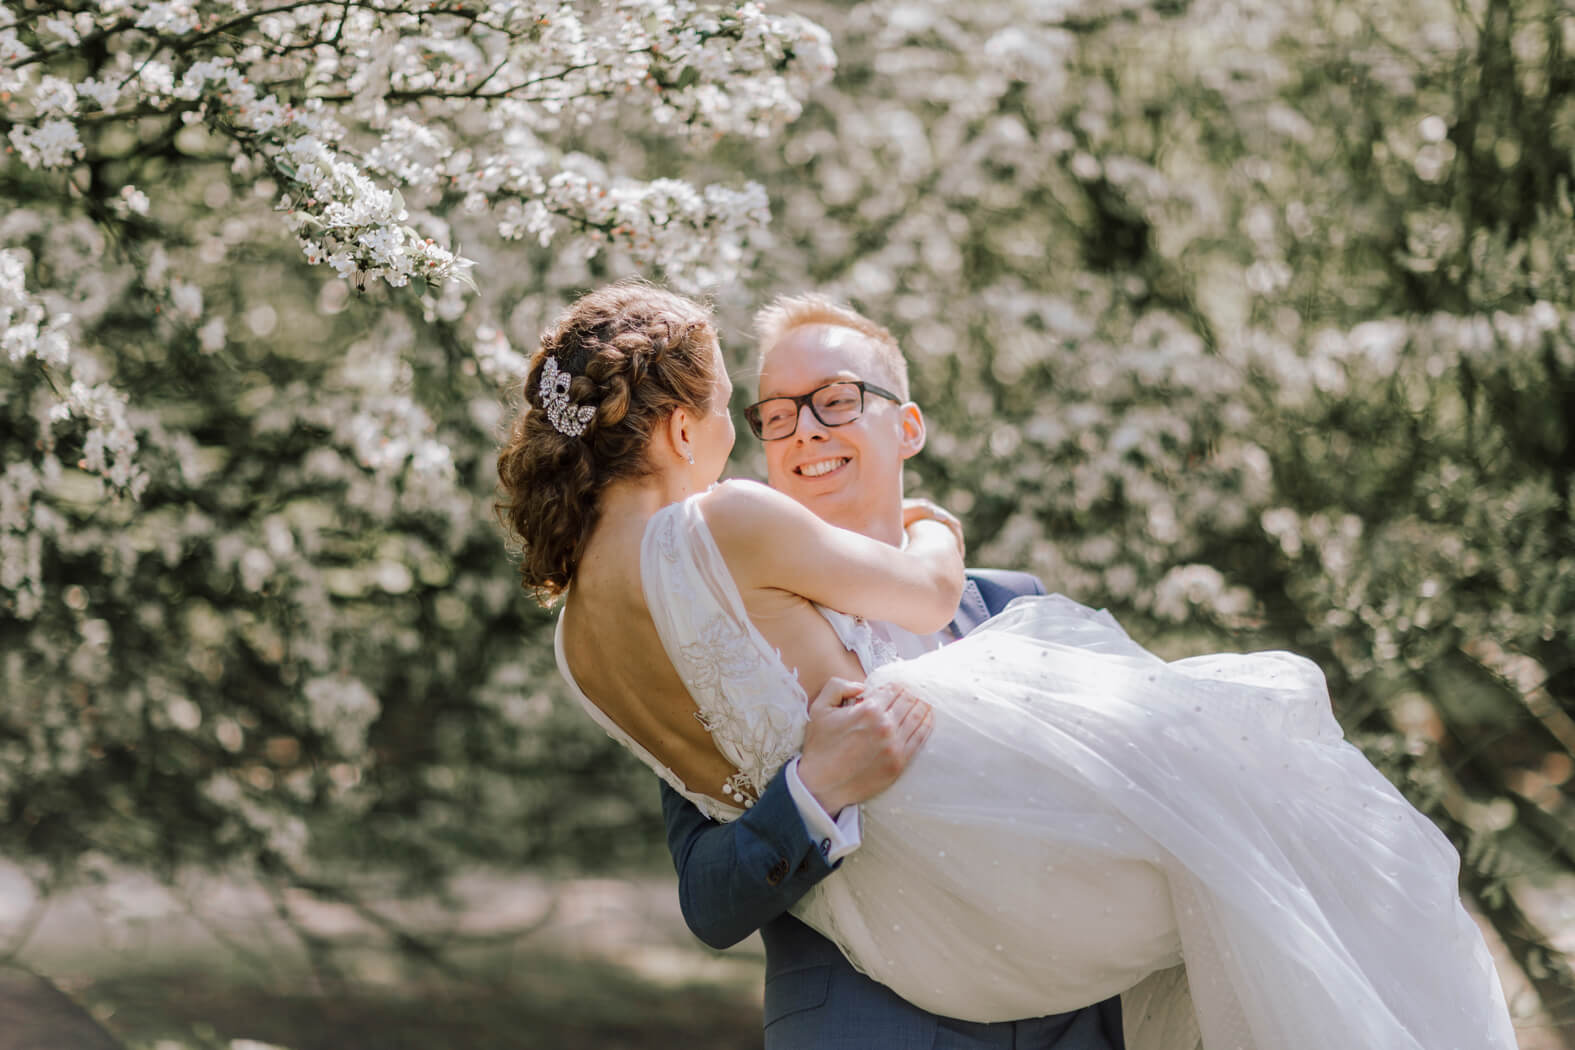 Wedding-Update-bridal-couple-Shooting-under-the-Cherry-Trees-kationette-wedding-2018-bride